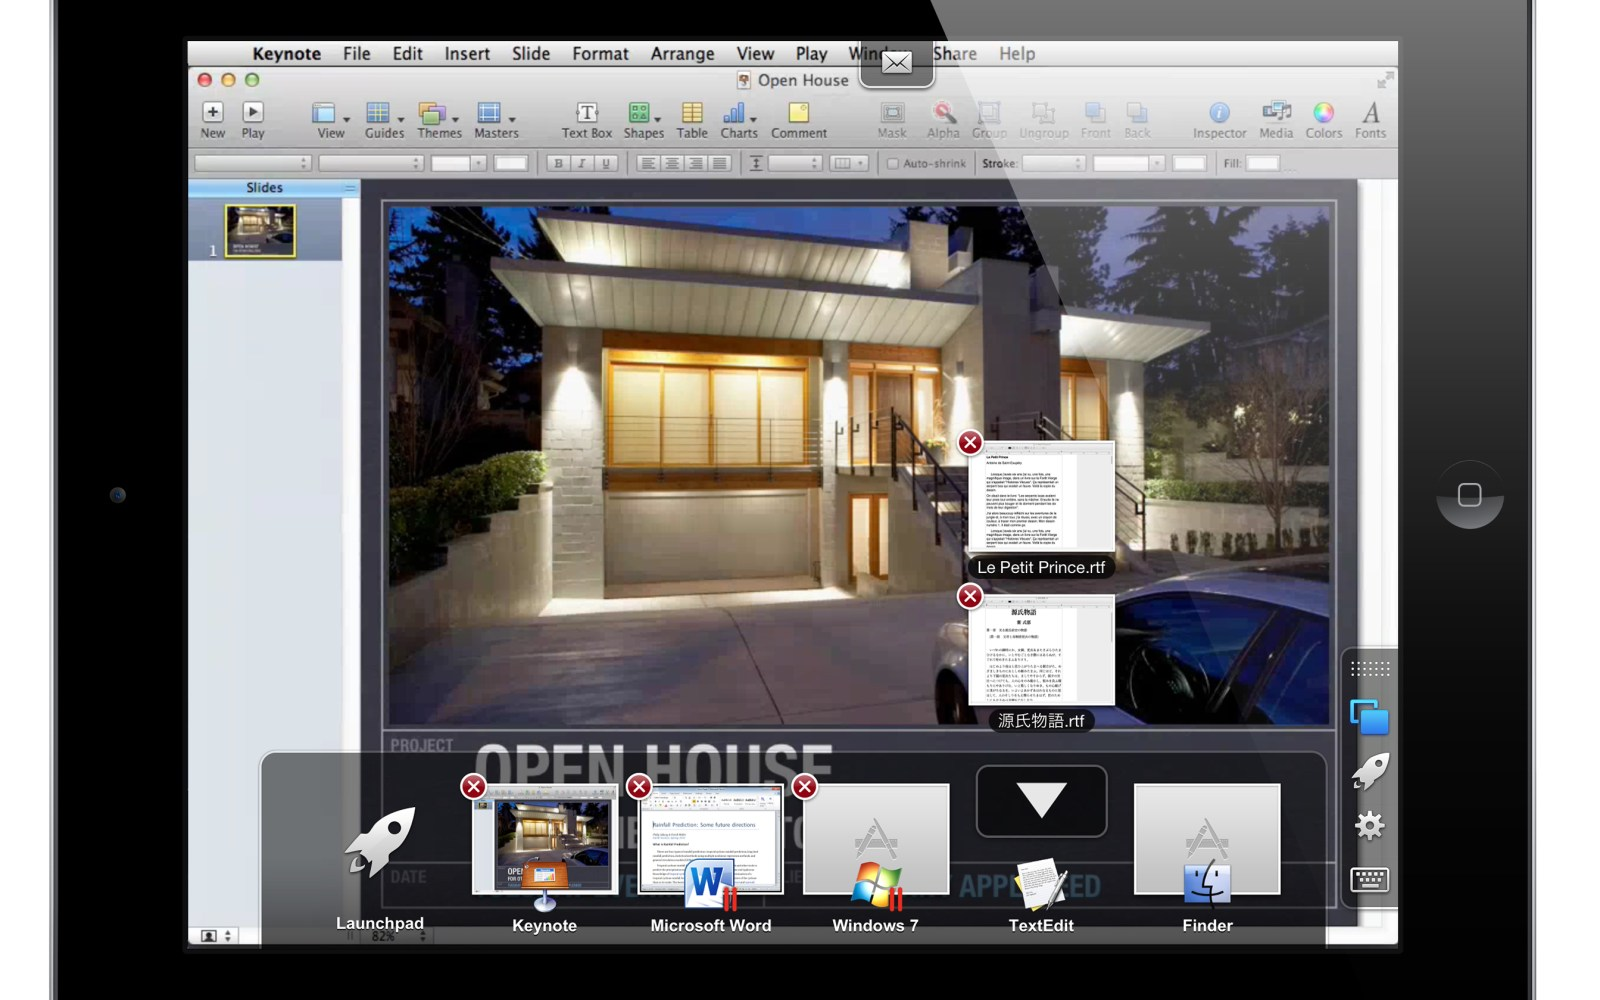 Parallels' new iPad app 'Access' makes your Mac apps feel like native iOS apps [Review]